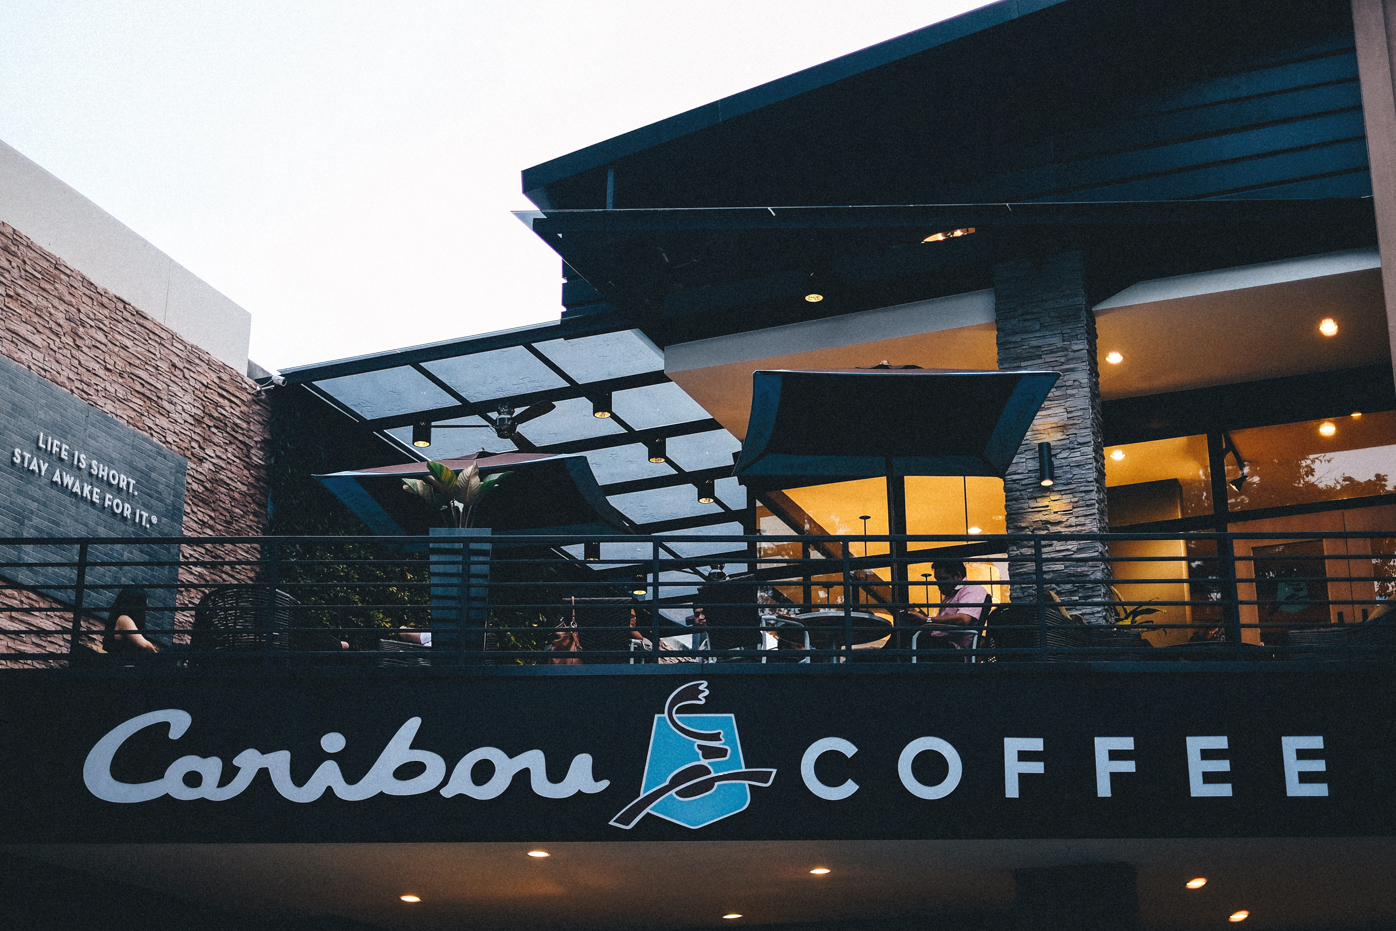 By Email. Store Visit Feedback Caribou Gift Cards (Lost Cards, etc.) Online Orders Contact Caribou Coffee Real Estate Wholesale and Commercial Sales Roastmaster Media Relations Partnership Requests Website Support.